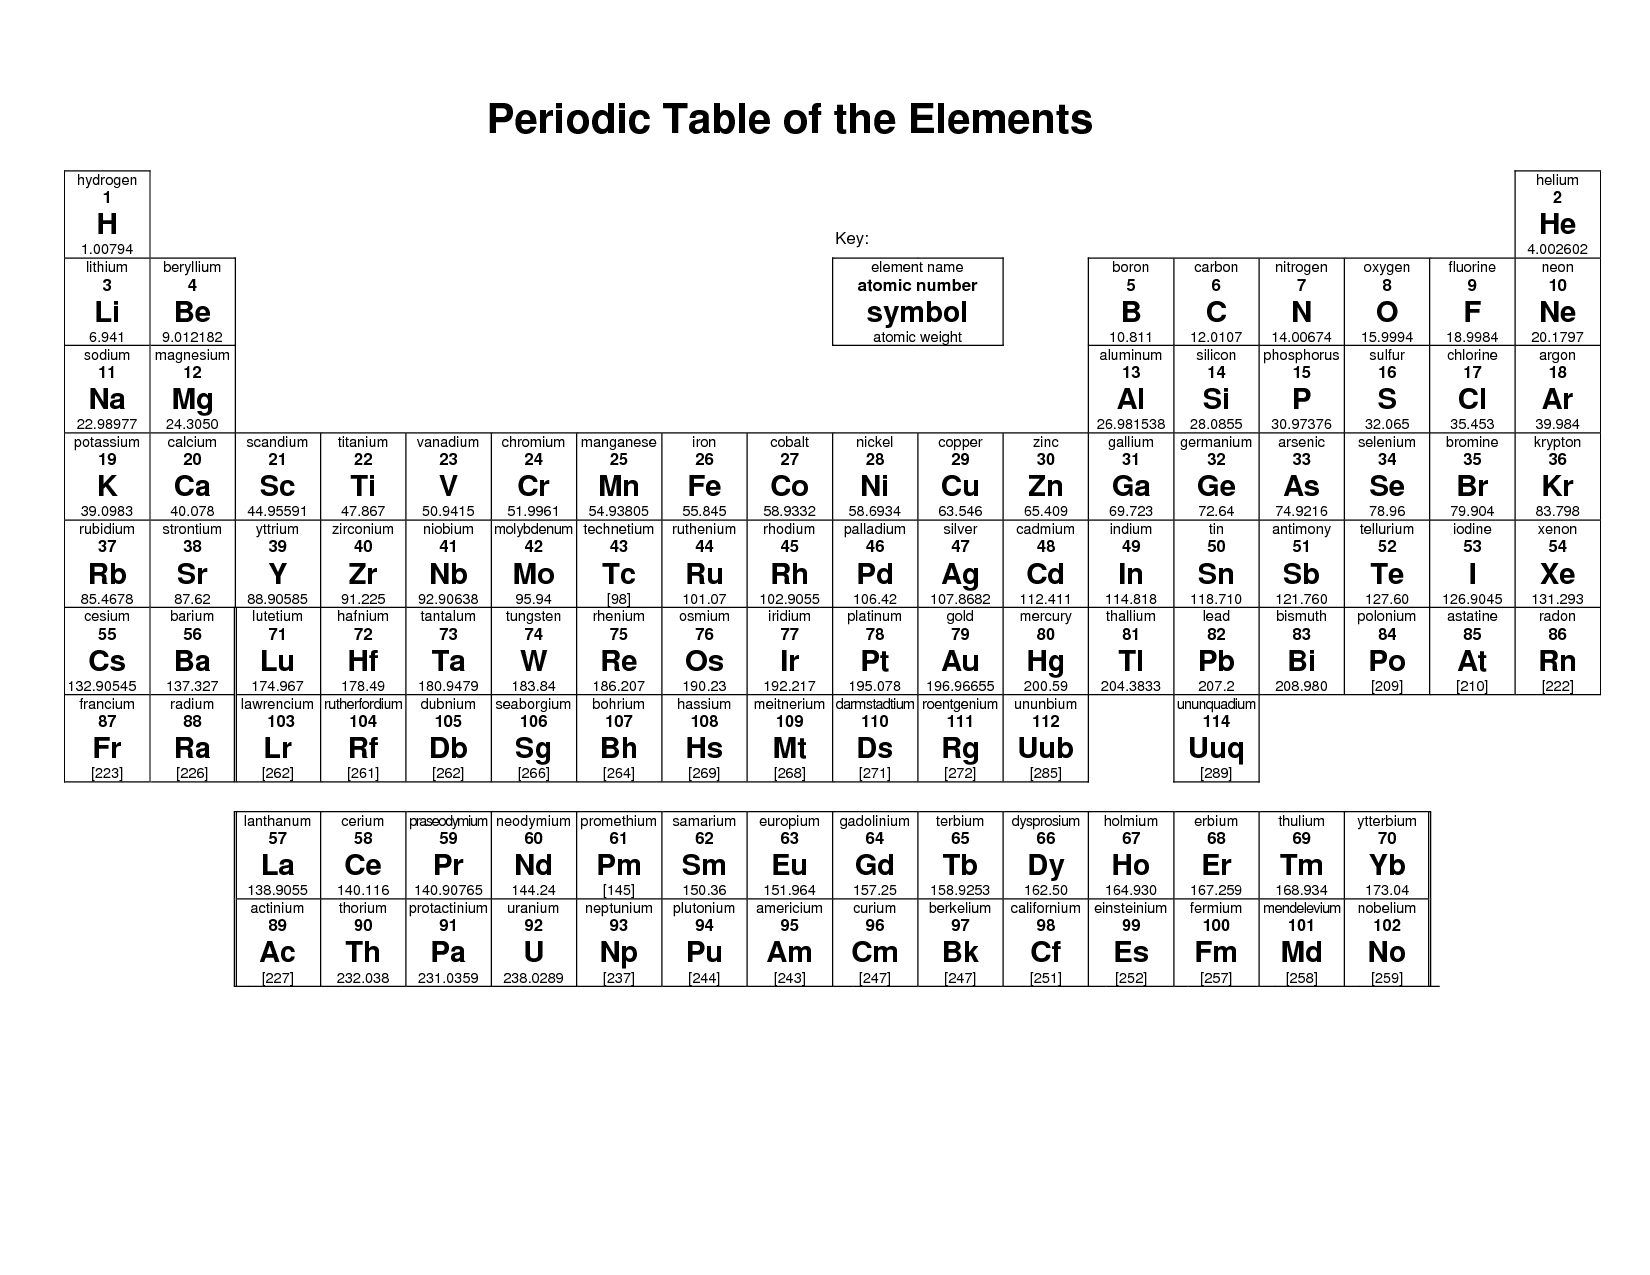 33 Awesome Printable Periodic Table Of Elements Images